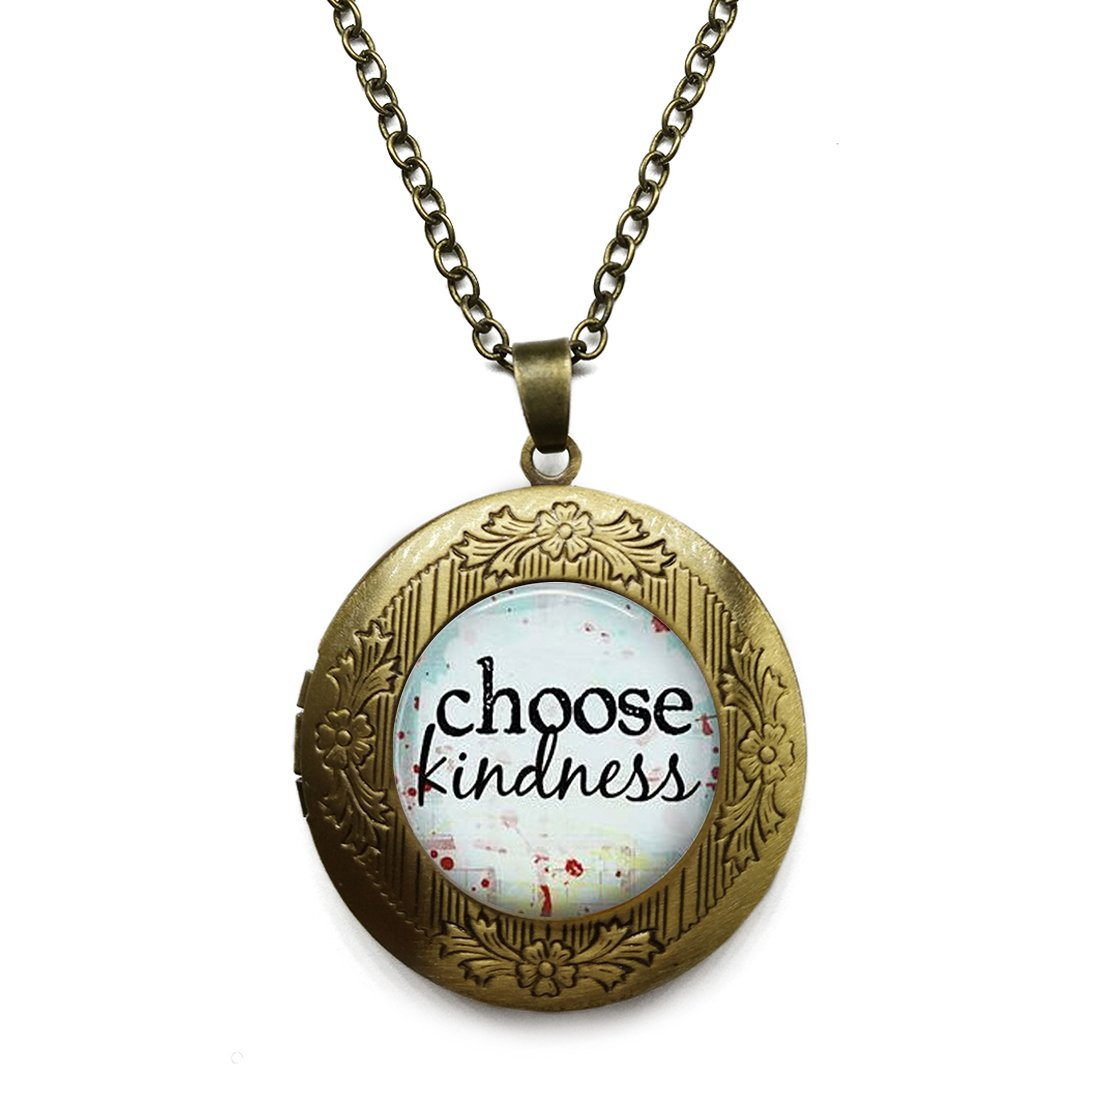 Vintage Bronze Tone Locket Picture Pendant Necklace Joshua 1.9 Bible Quote Included Free Brass Chain Gifts Personalized